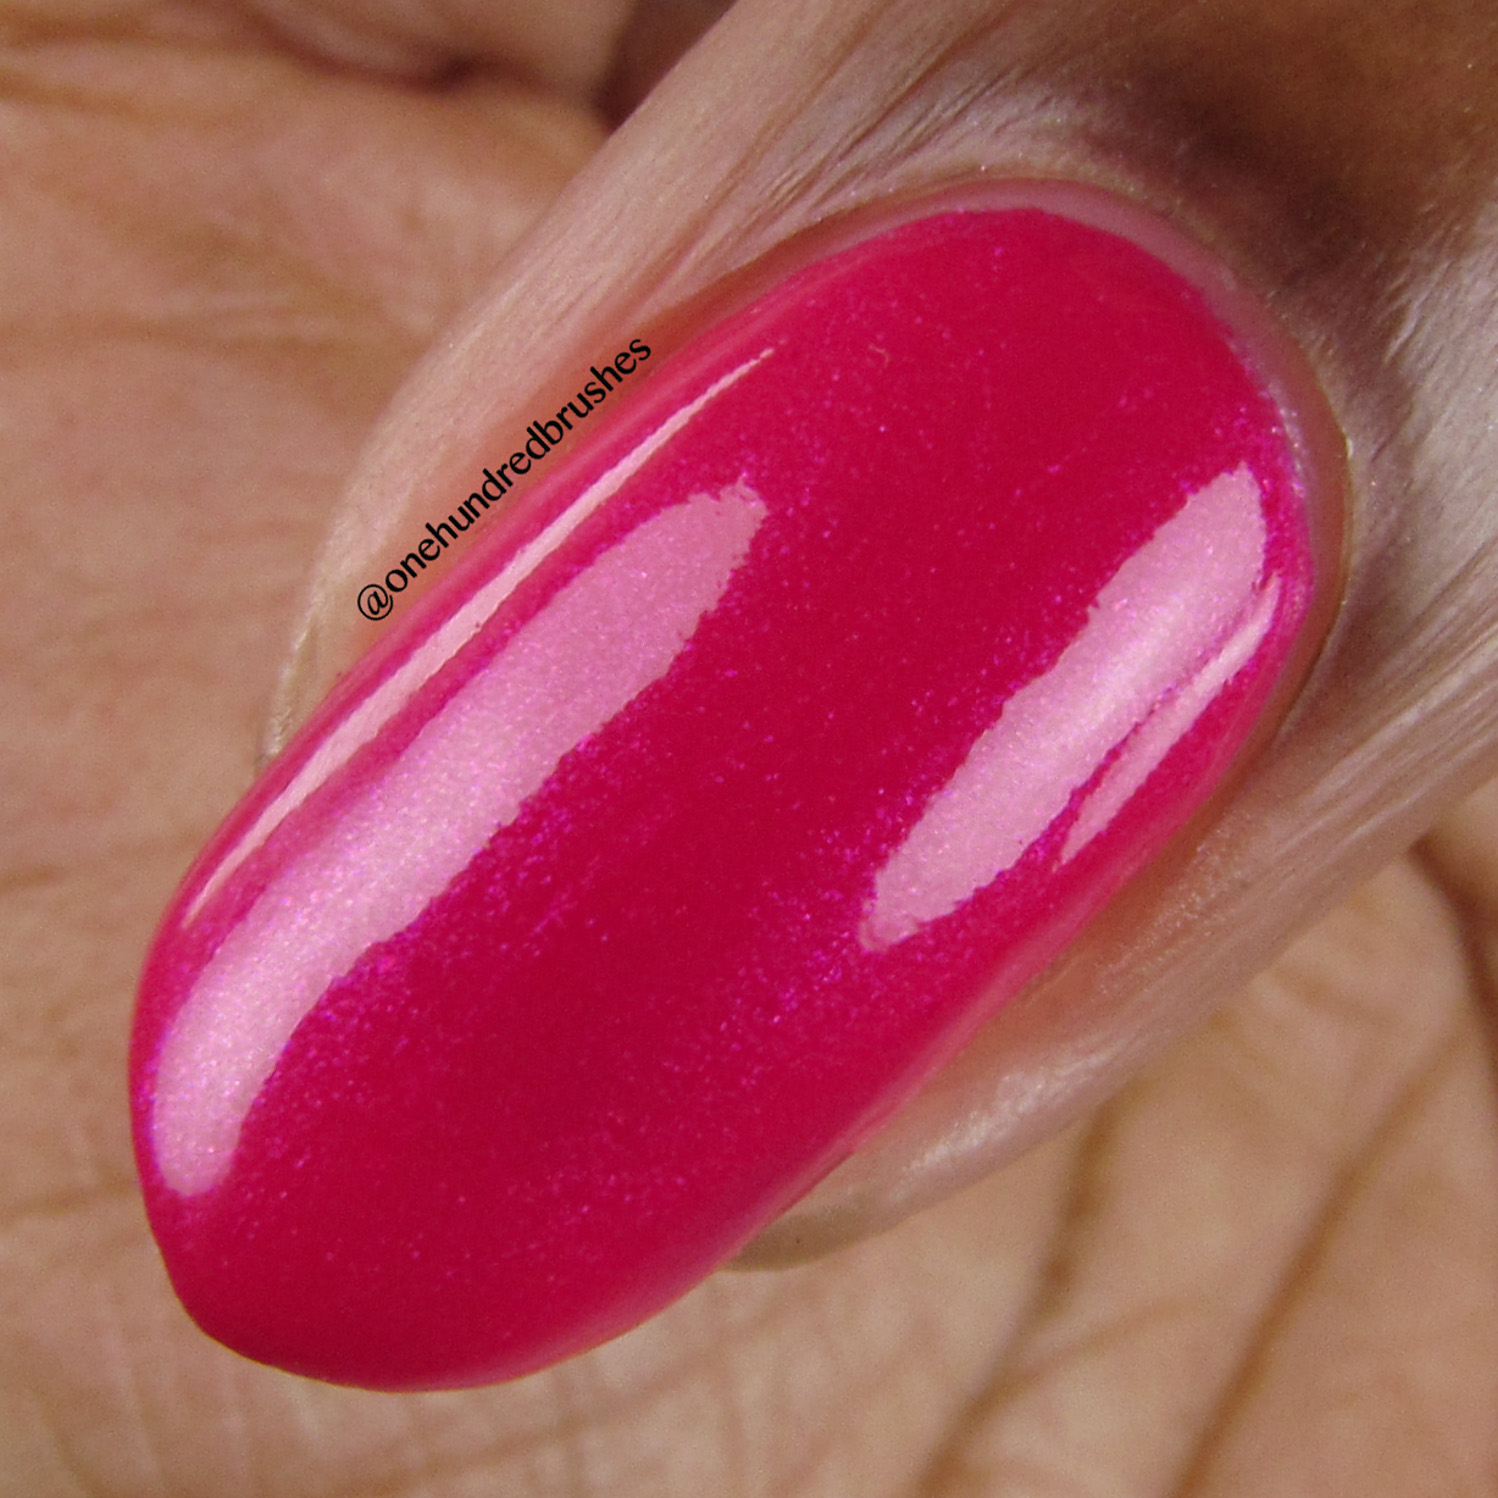 Flamingle - macro - Vapid Lacquer - April 2018 - Spring release - barbie pink - pink shimmer